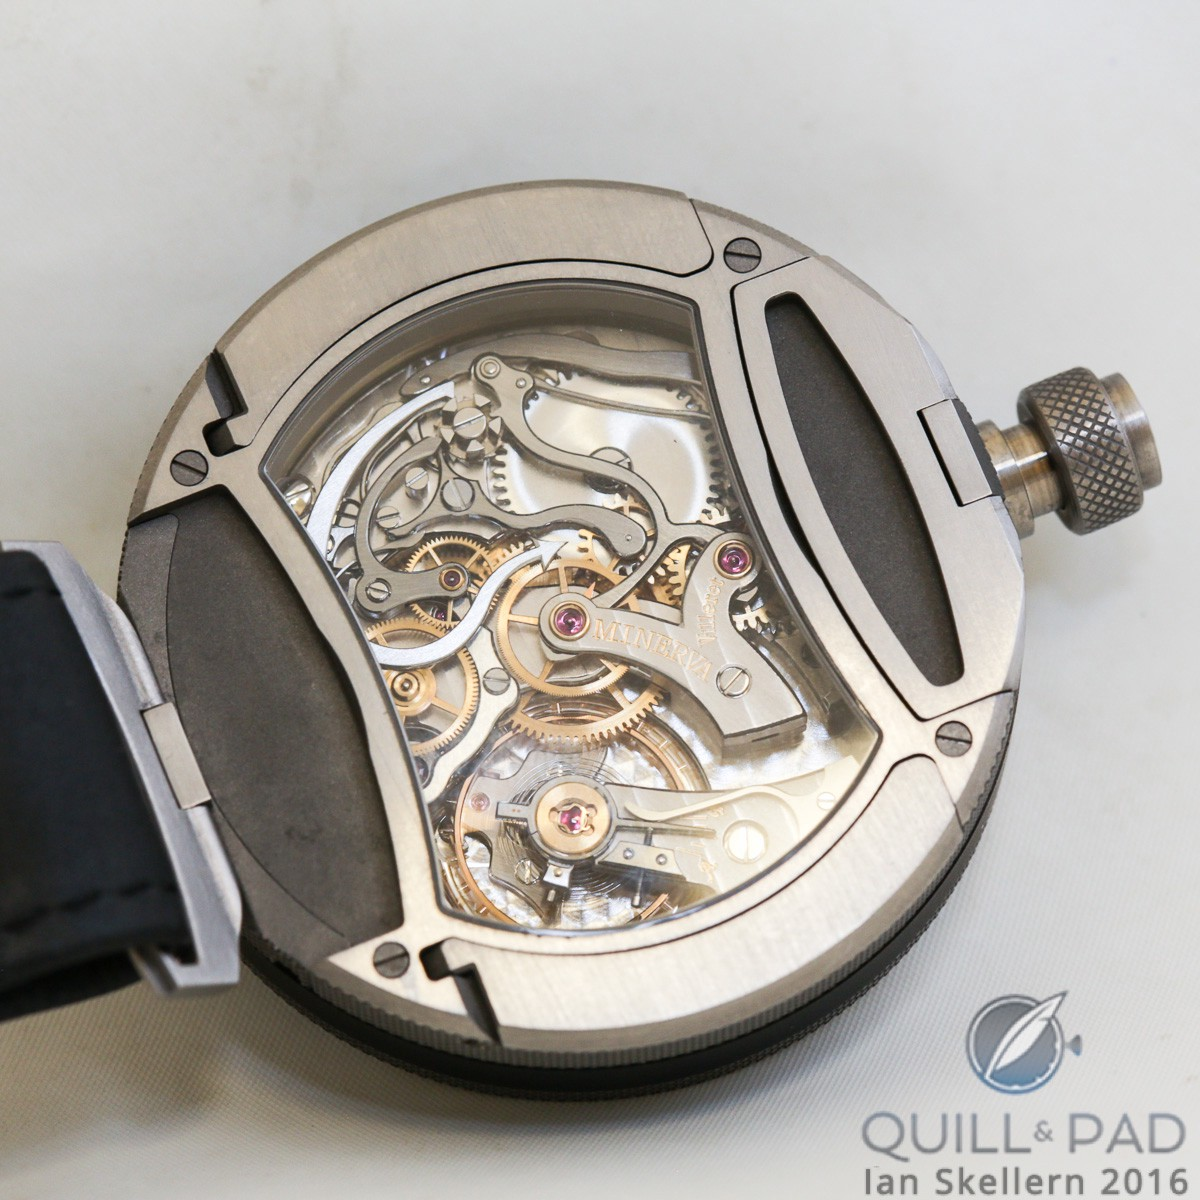 View through the display back to the movement of the Montblanc TimeWalker Chronograph Rally Timer Counter Limited Edition 100